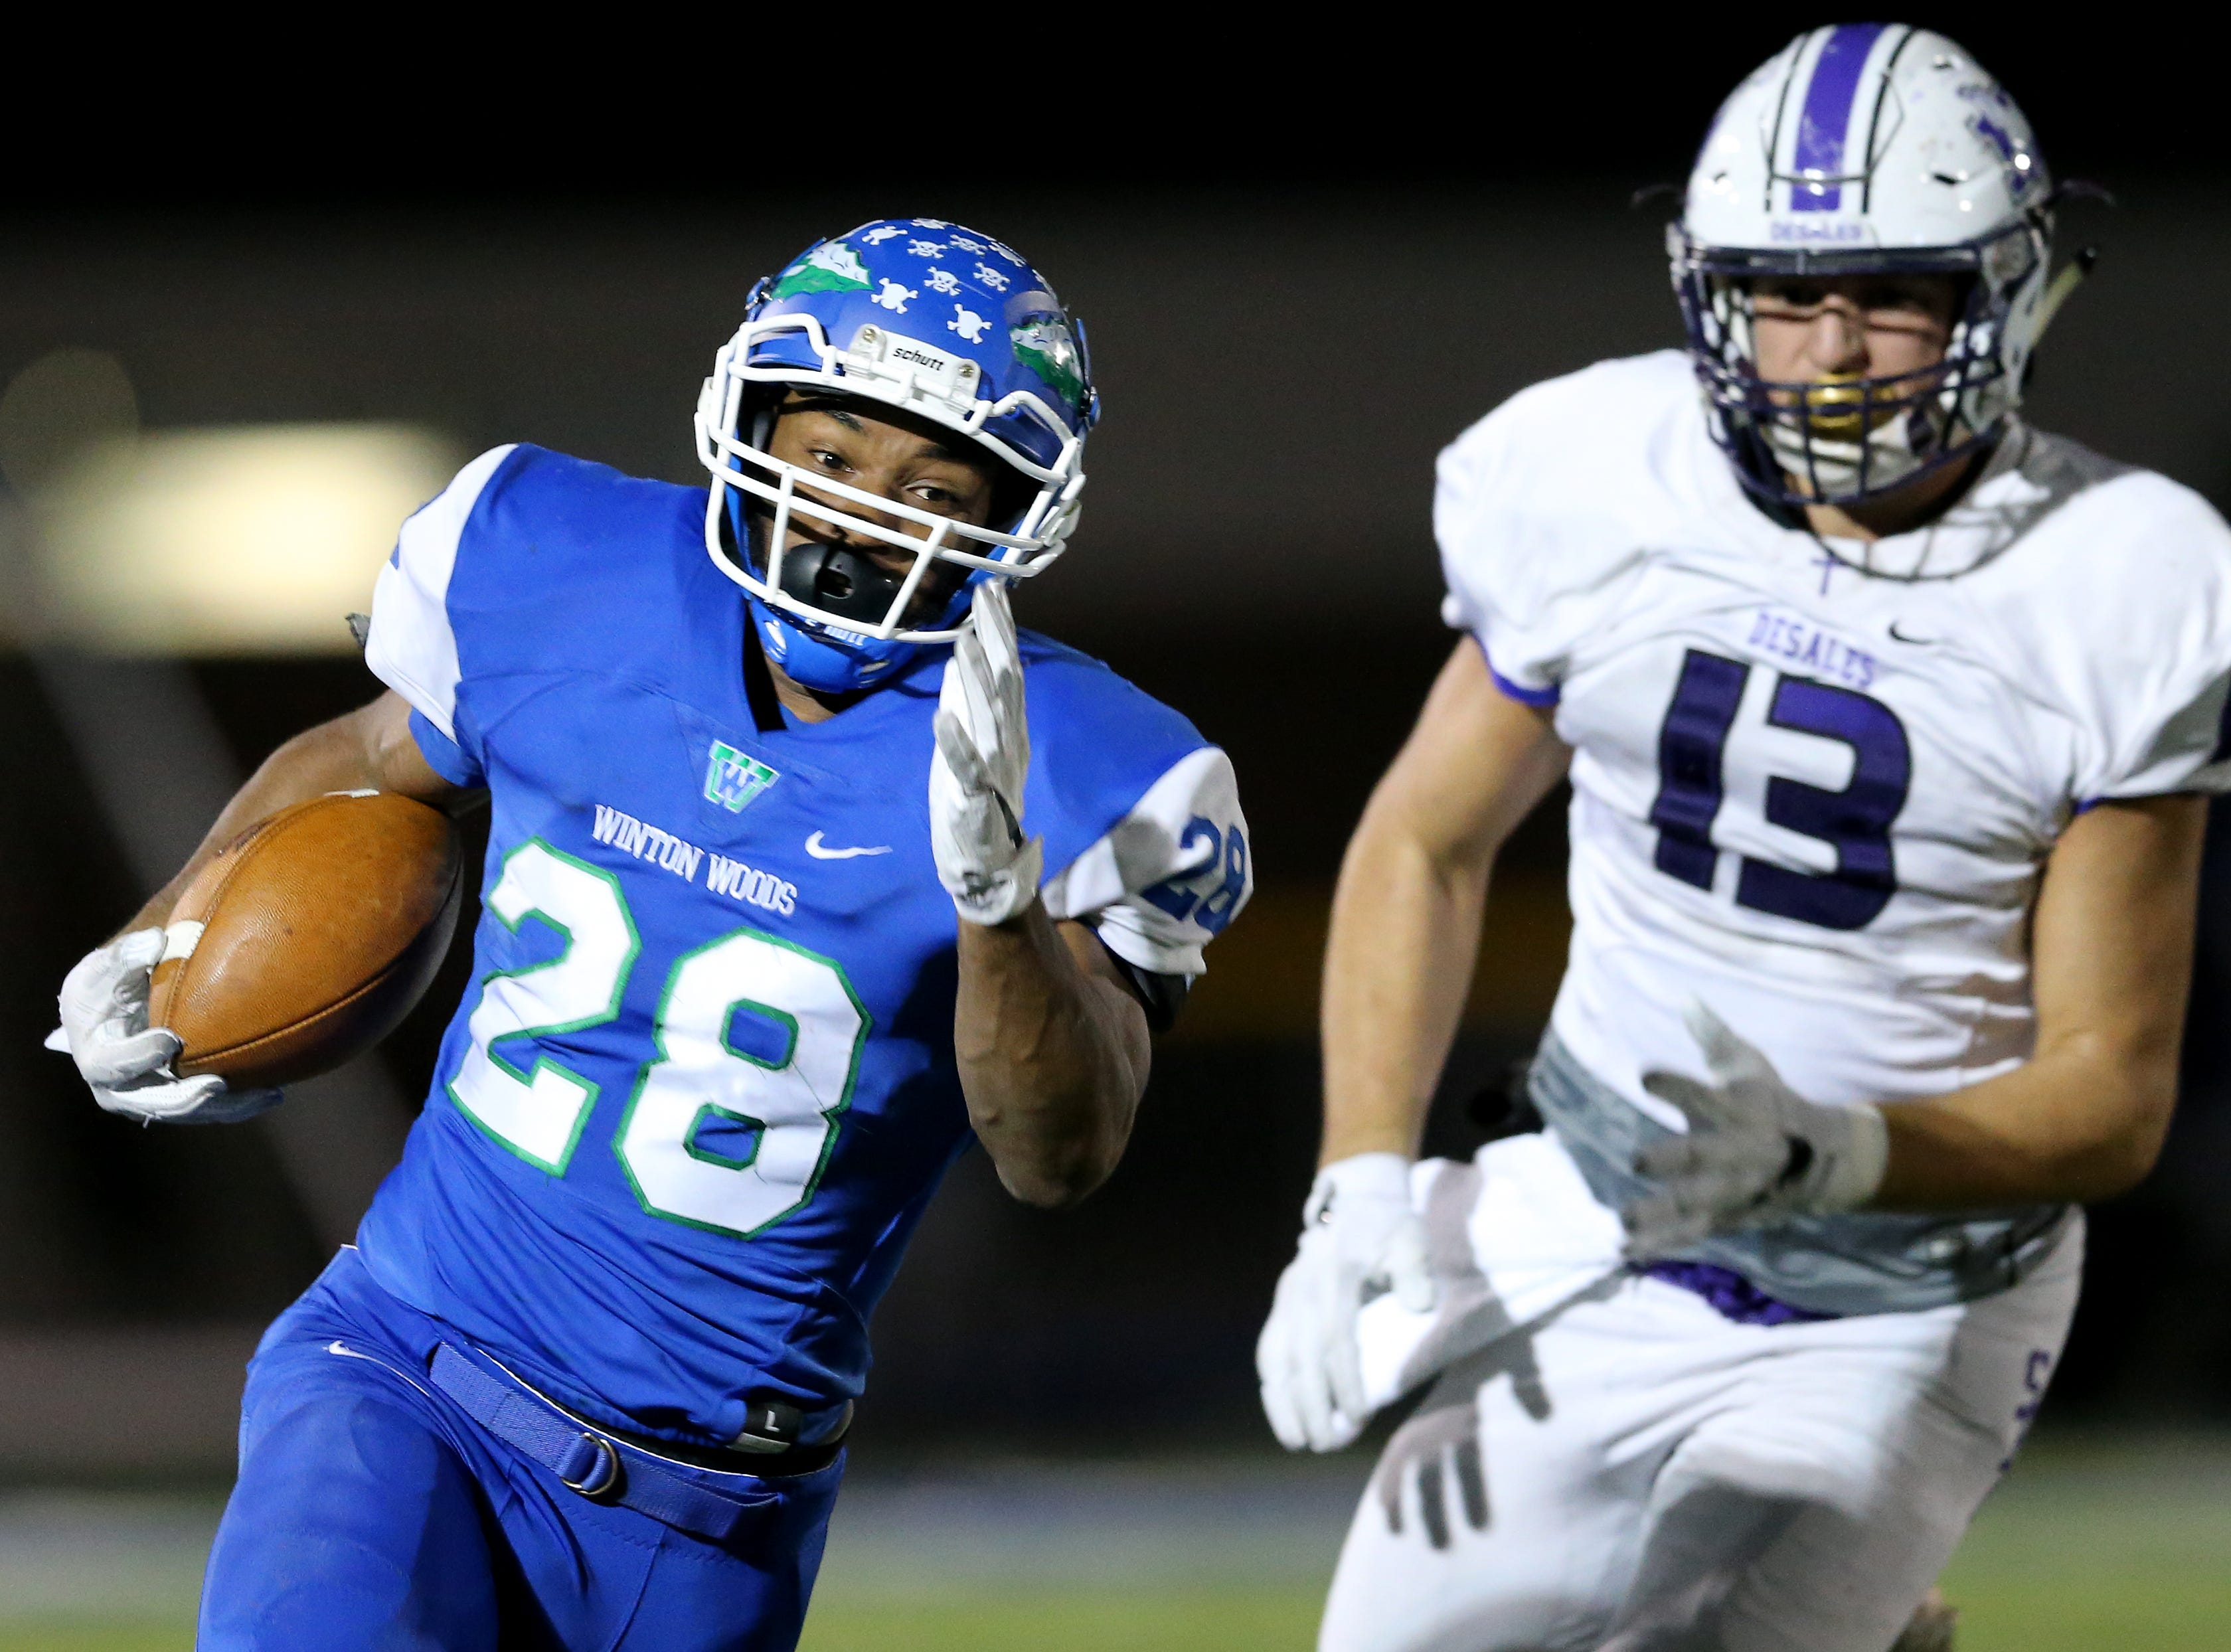 Winton Woods Warriors running back Miyan Williams (28) runs the ball in the second quarter during a high school football game between St. Francis de Sales and Winton Woods, Friday, Oct. 19, 2018, at Winton Woods High School in Forest Park, Ohio.